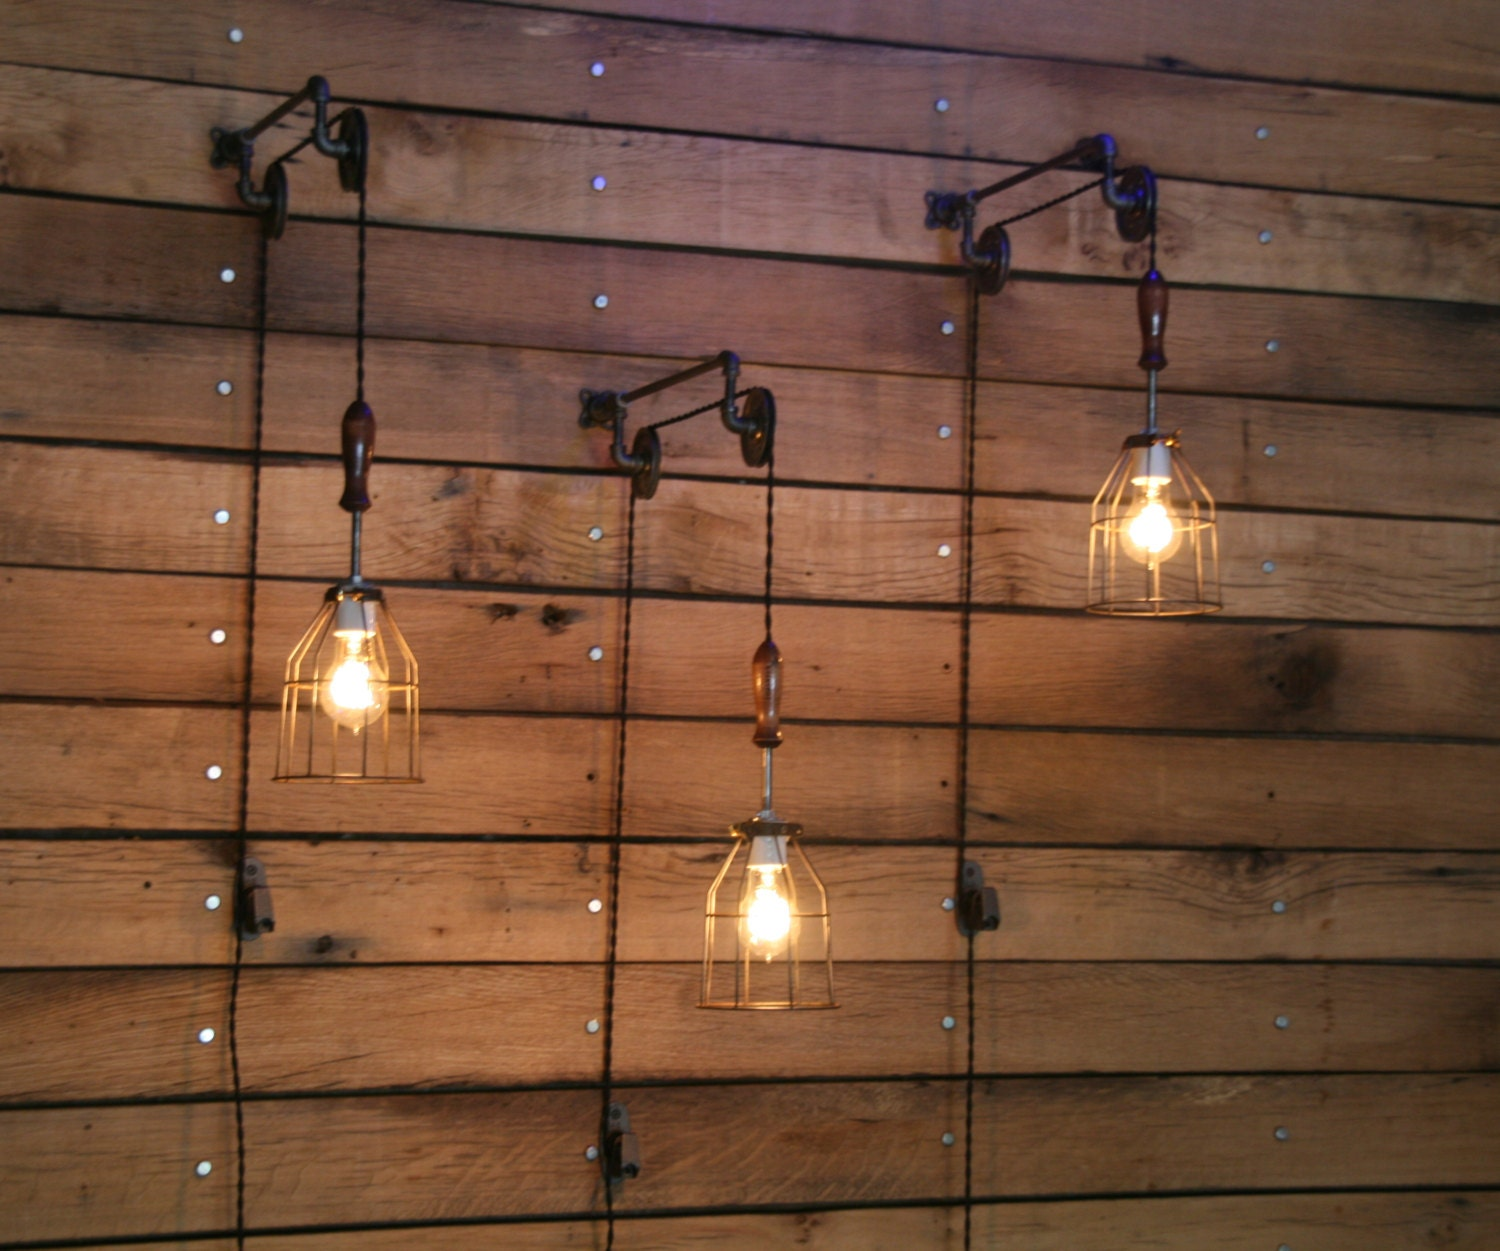 Wall Pendant Light: Pulley Wall Mount With Industrial Cage Light And Wooden Handle